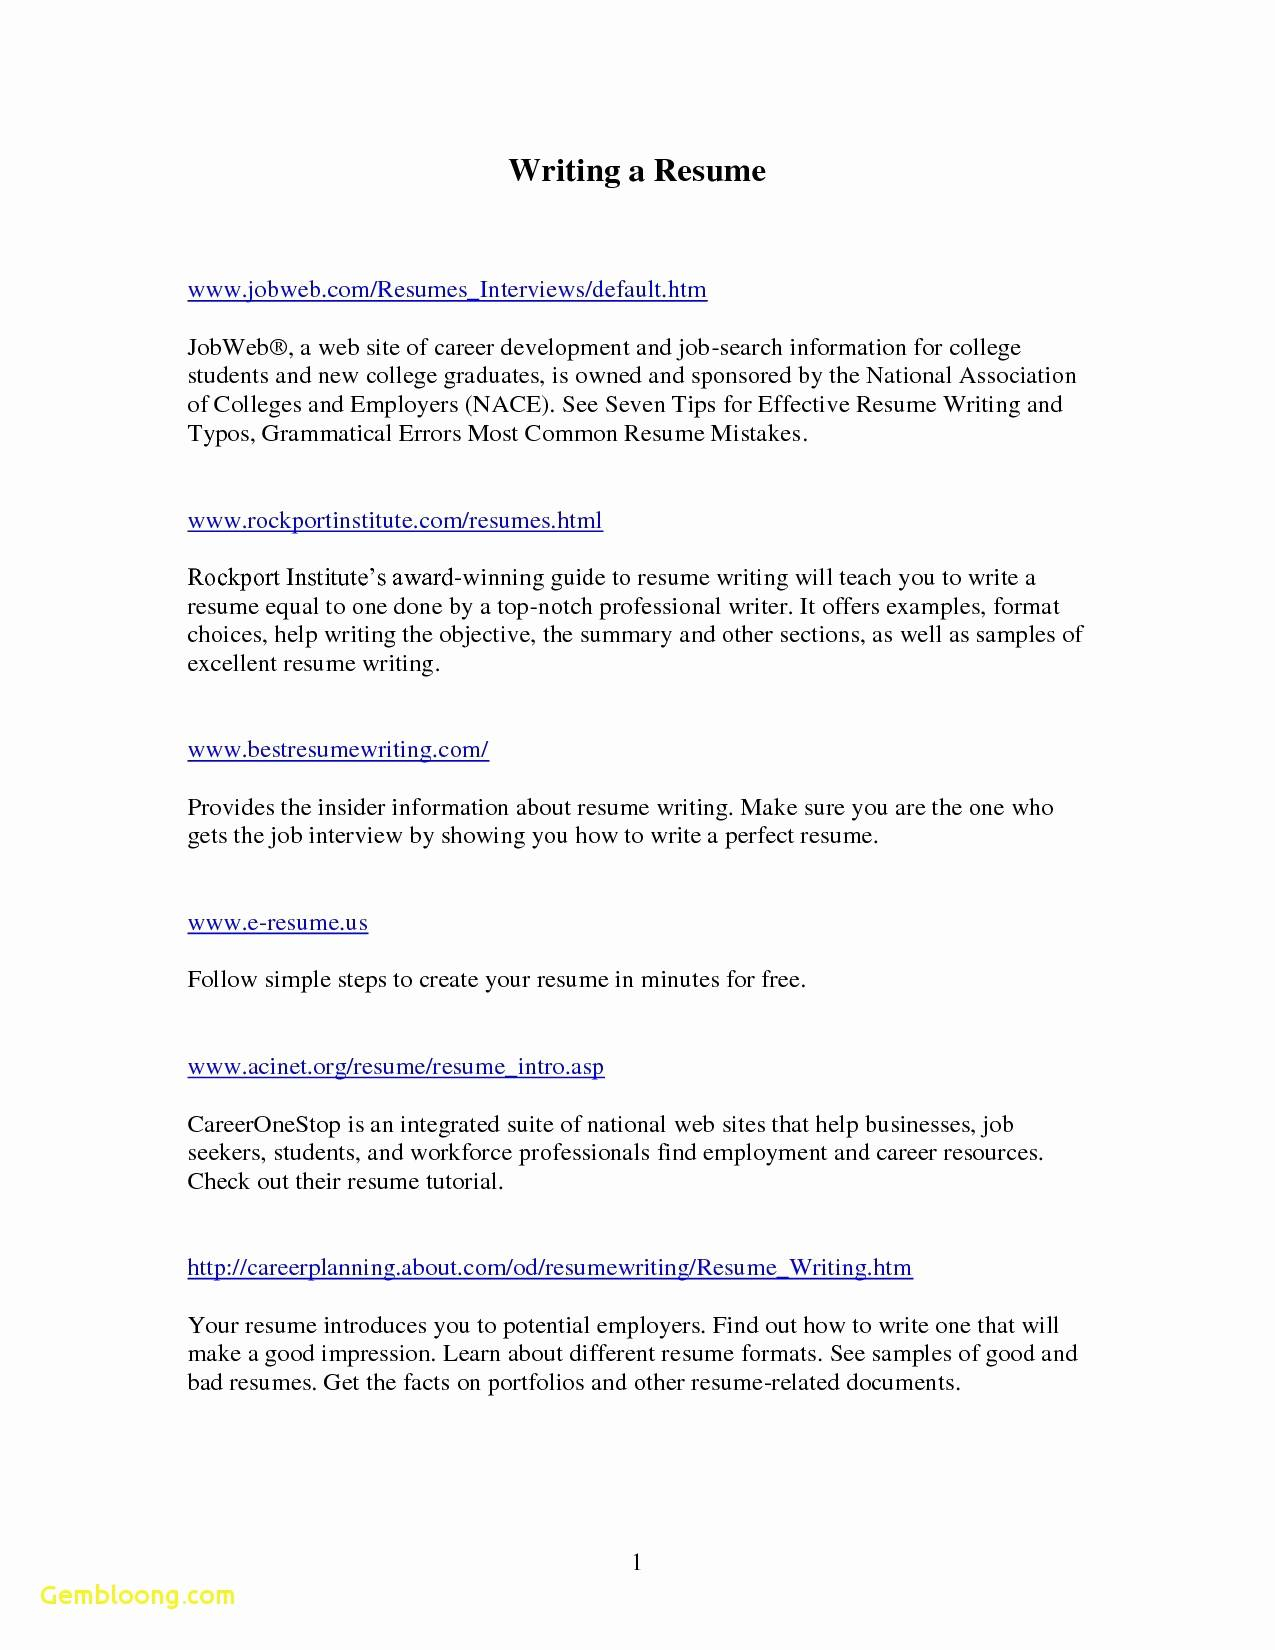 Template for Cover Letter for Teaching Position - 15 Lovely Sample Cover Letter for Teaching Position In College